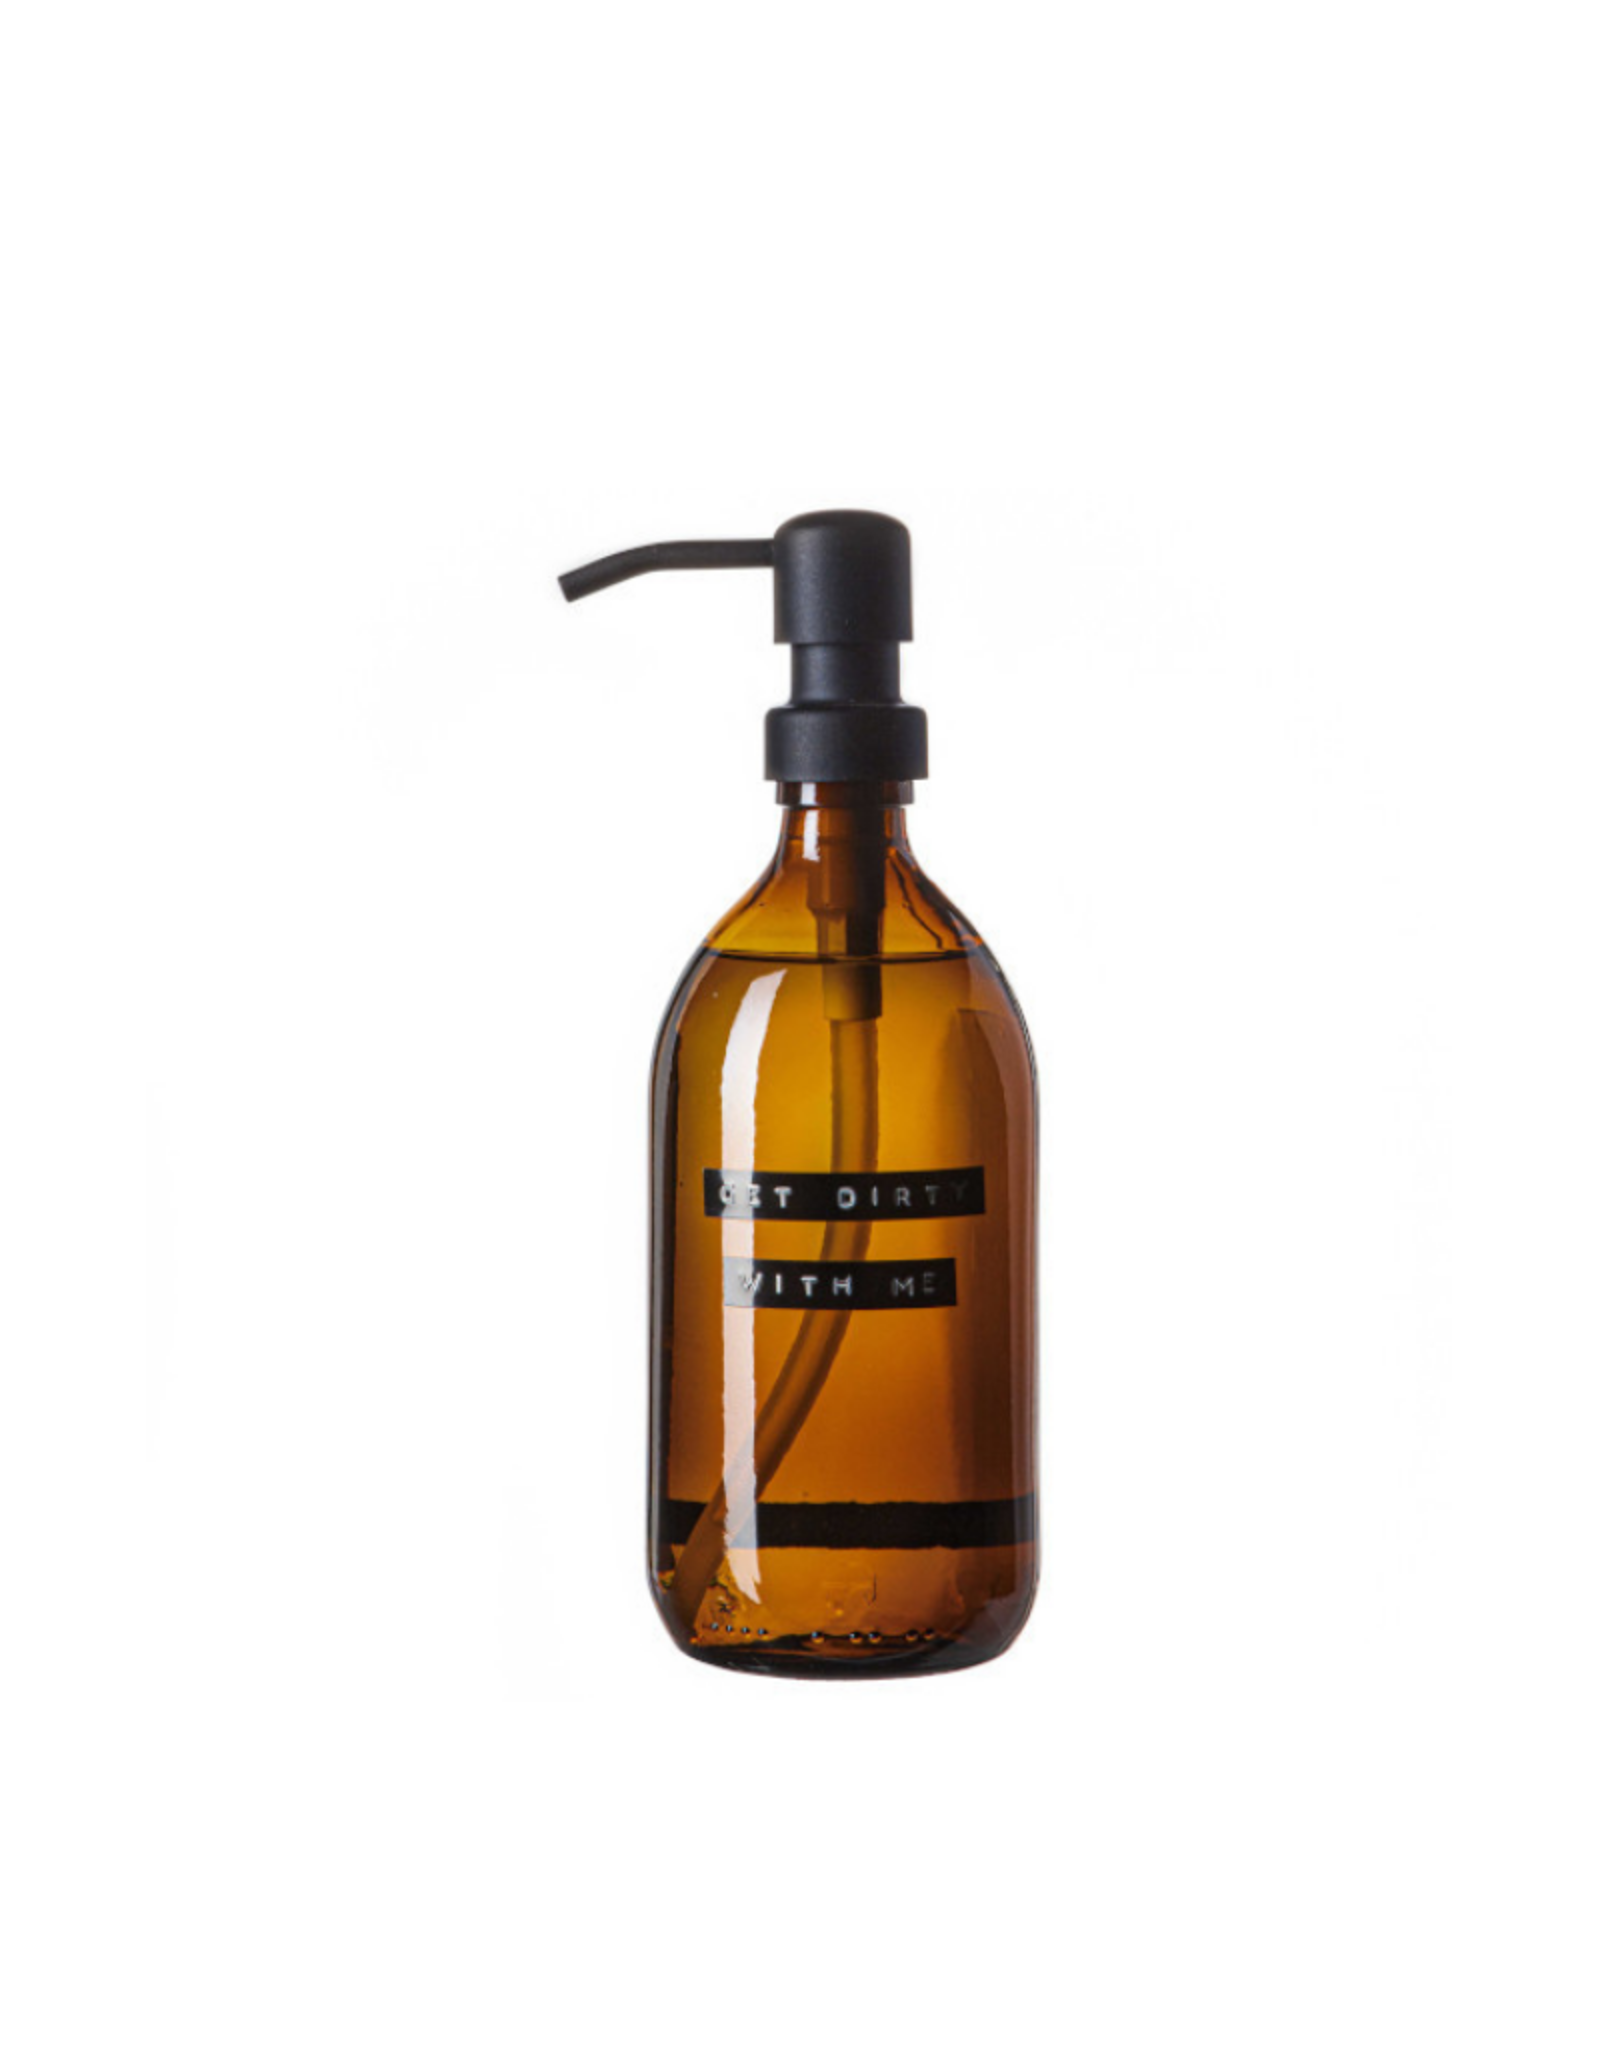 Wellmark Afwasmiddel in hervulbare fles 500ml - Get Dirty With Me